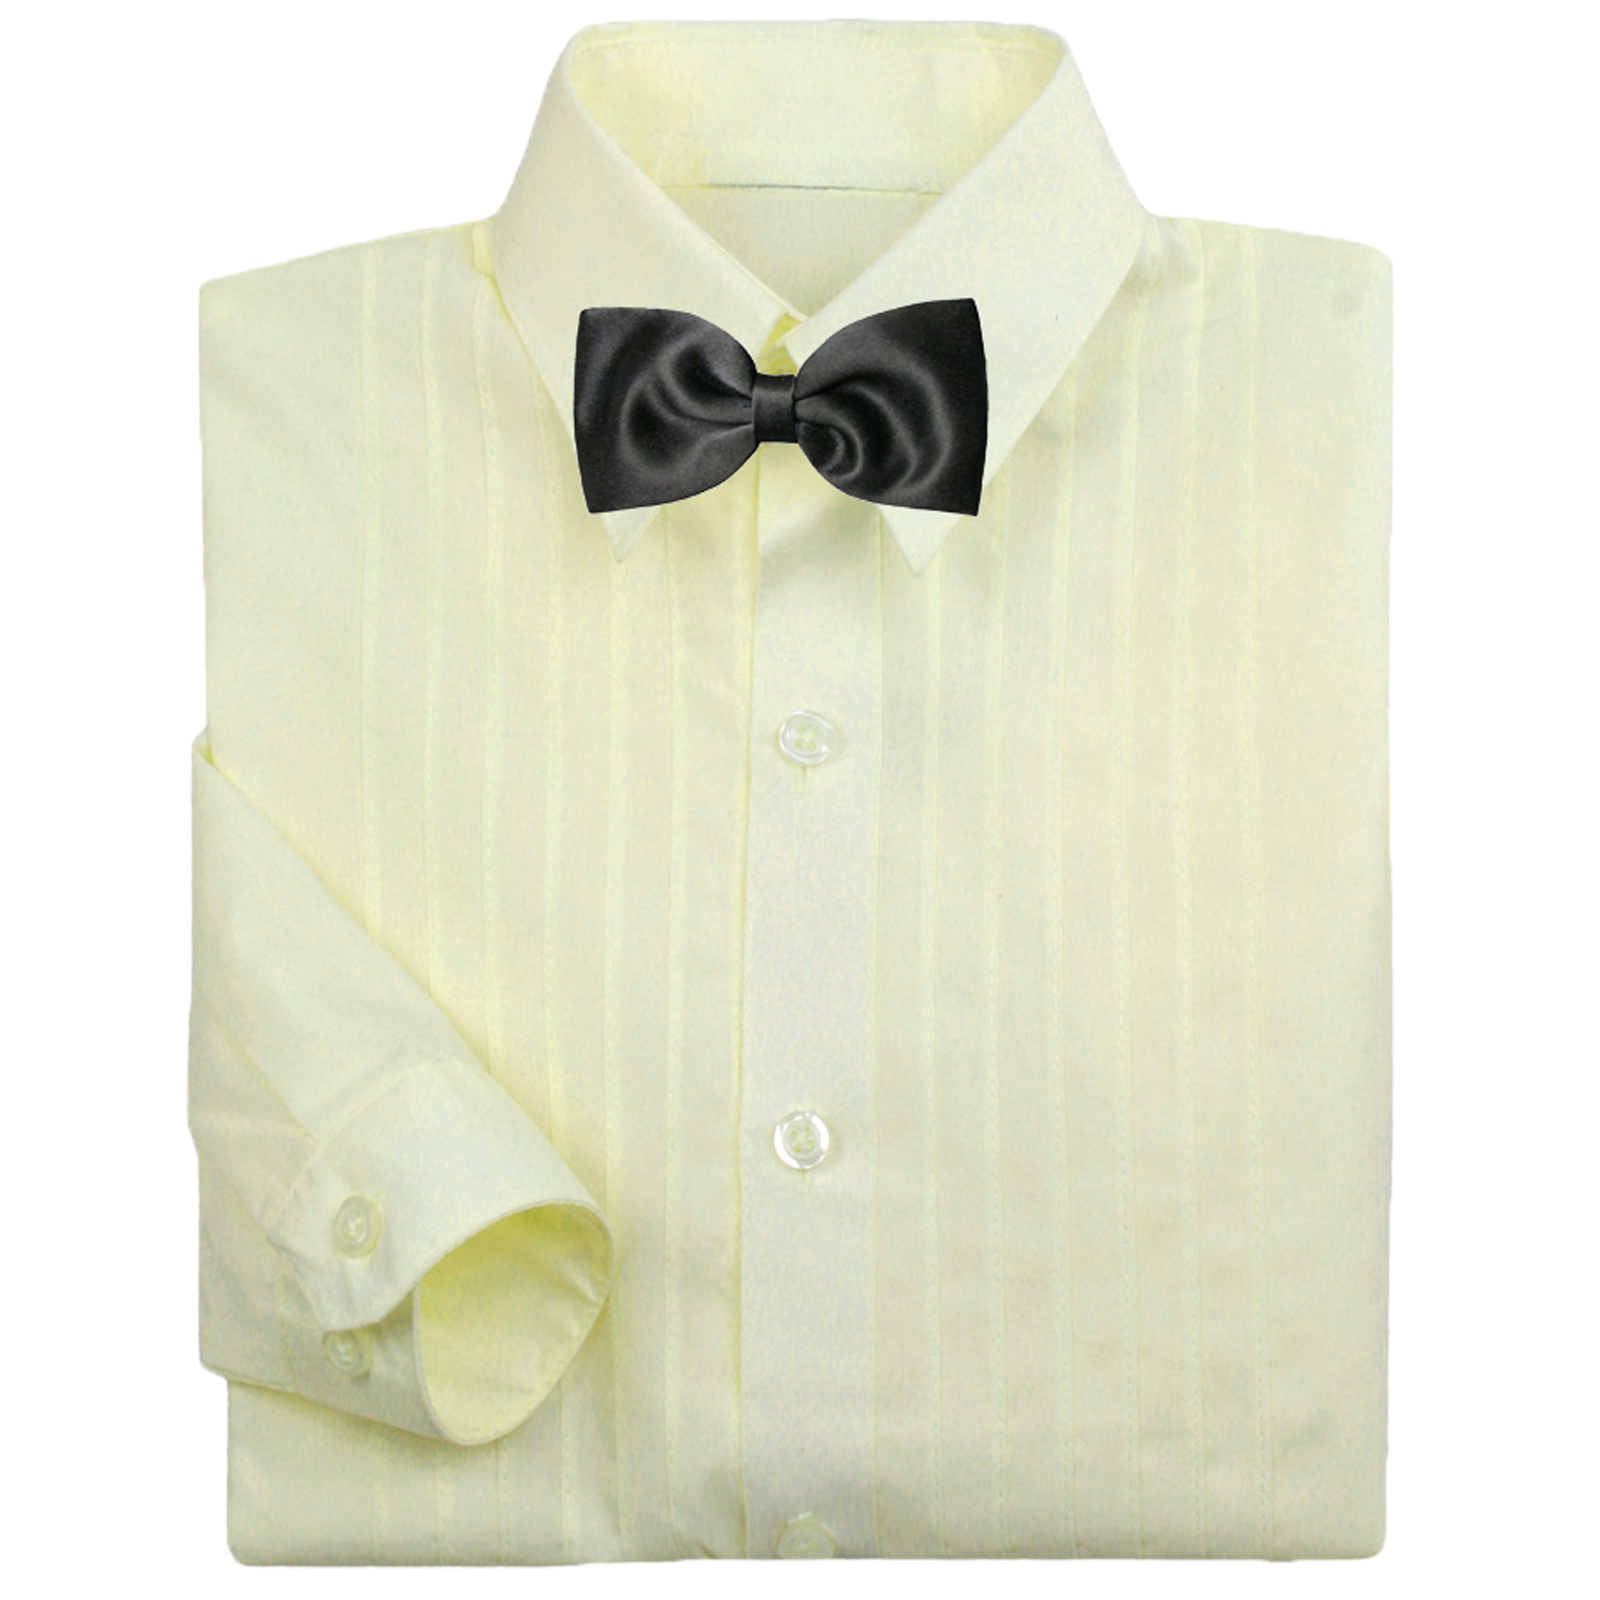 21befed74009 Baby Boy Formal Tuxedo Suit Ivory Button Down Dress Shirt Black Bow ...